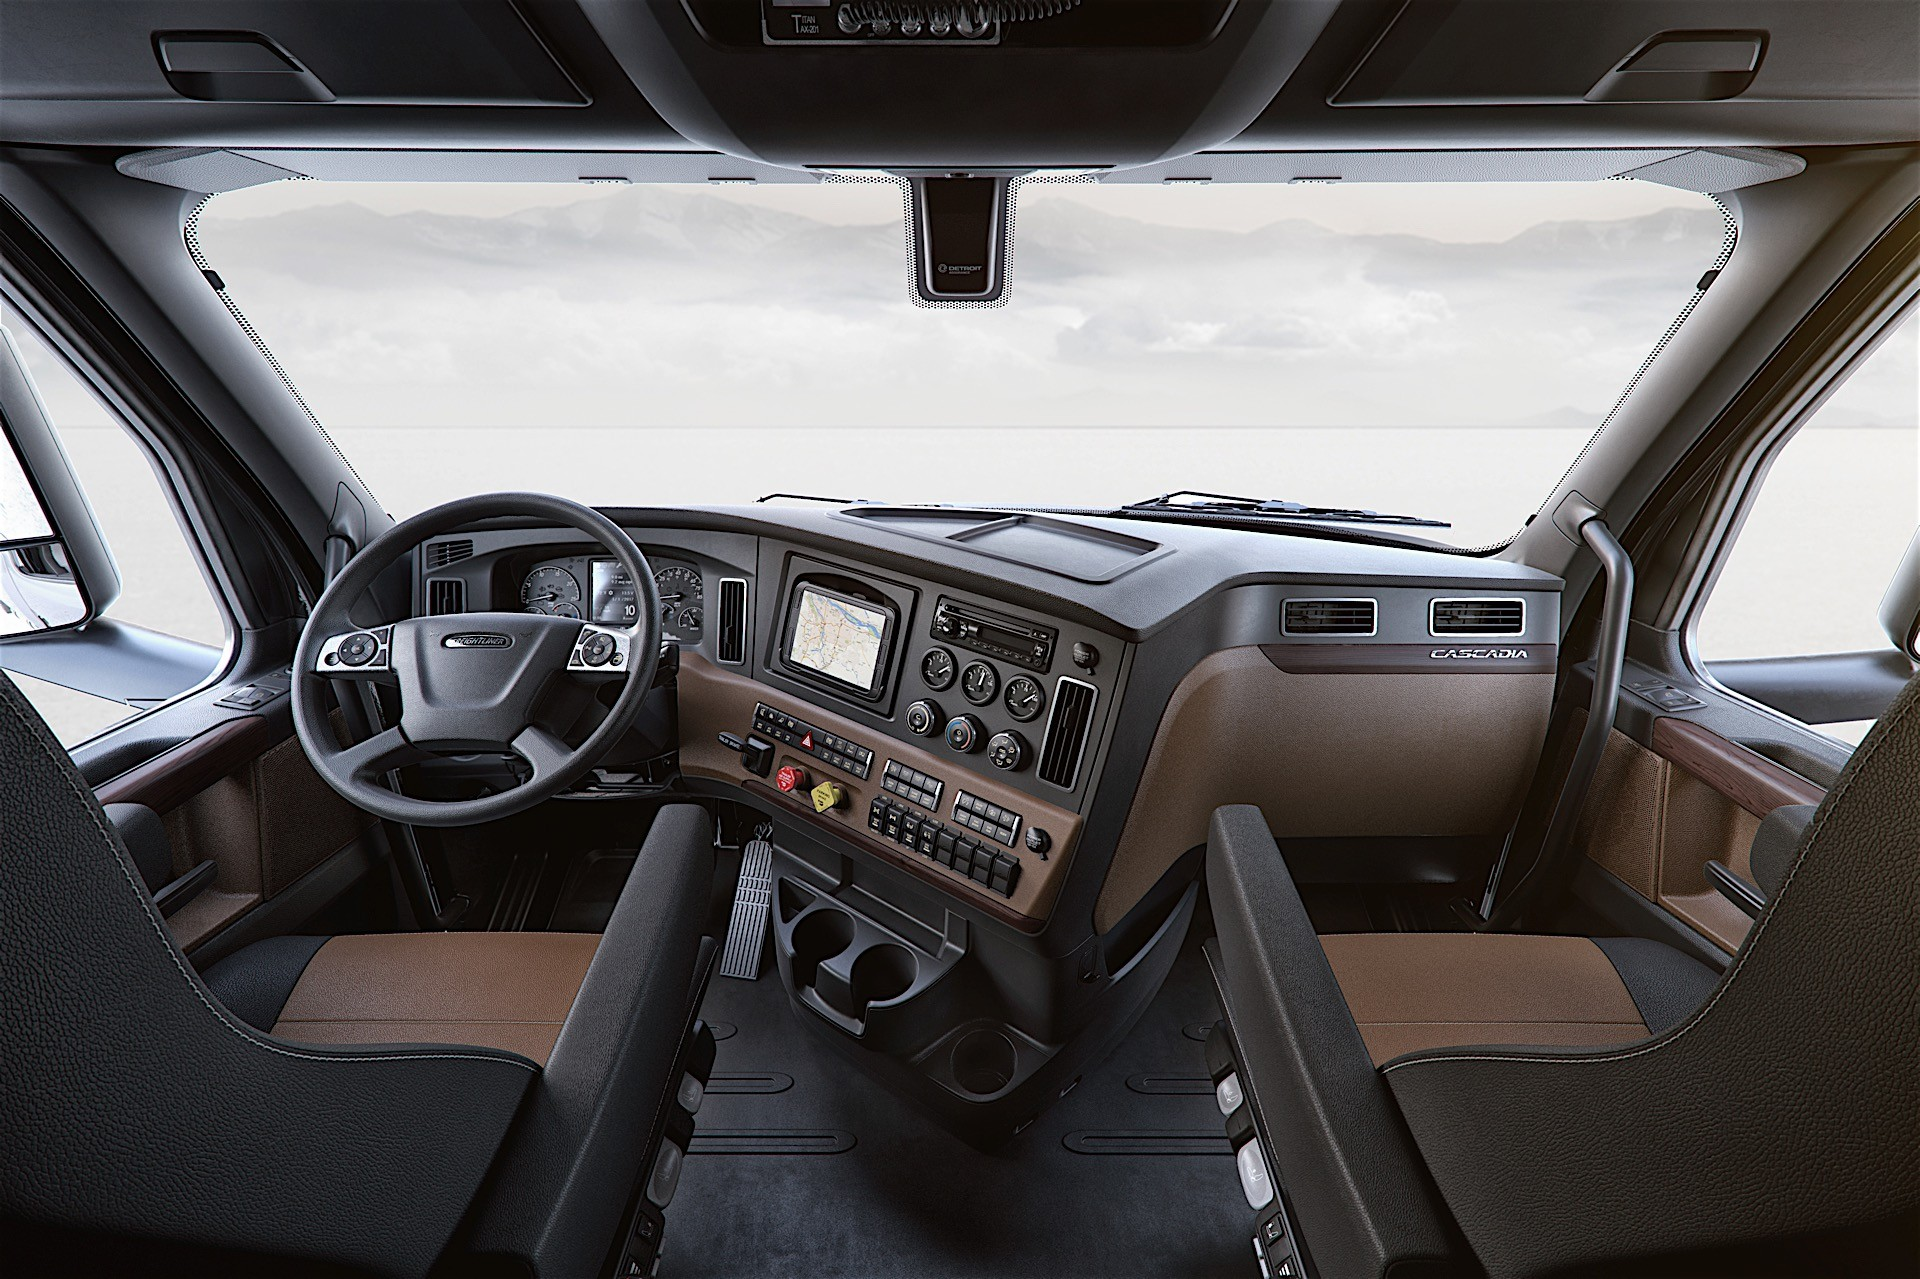 International Trucks offers a complete lineup of trucks including the HX Series and LT Series. It's Uptime, and we deliver solutions to help customers succeed.